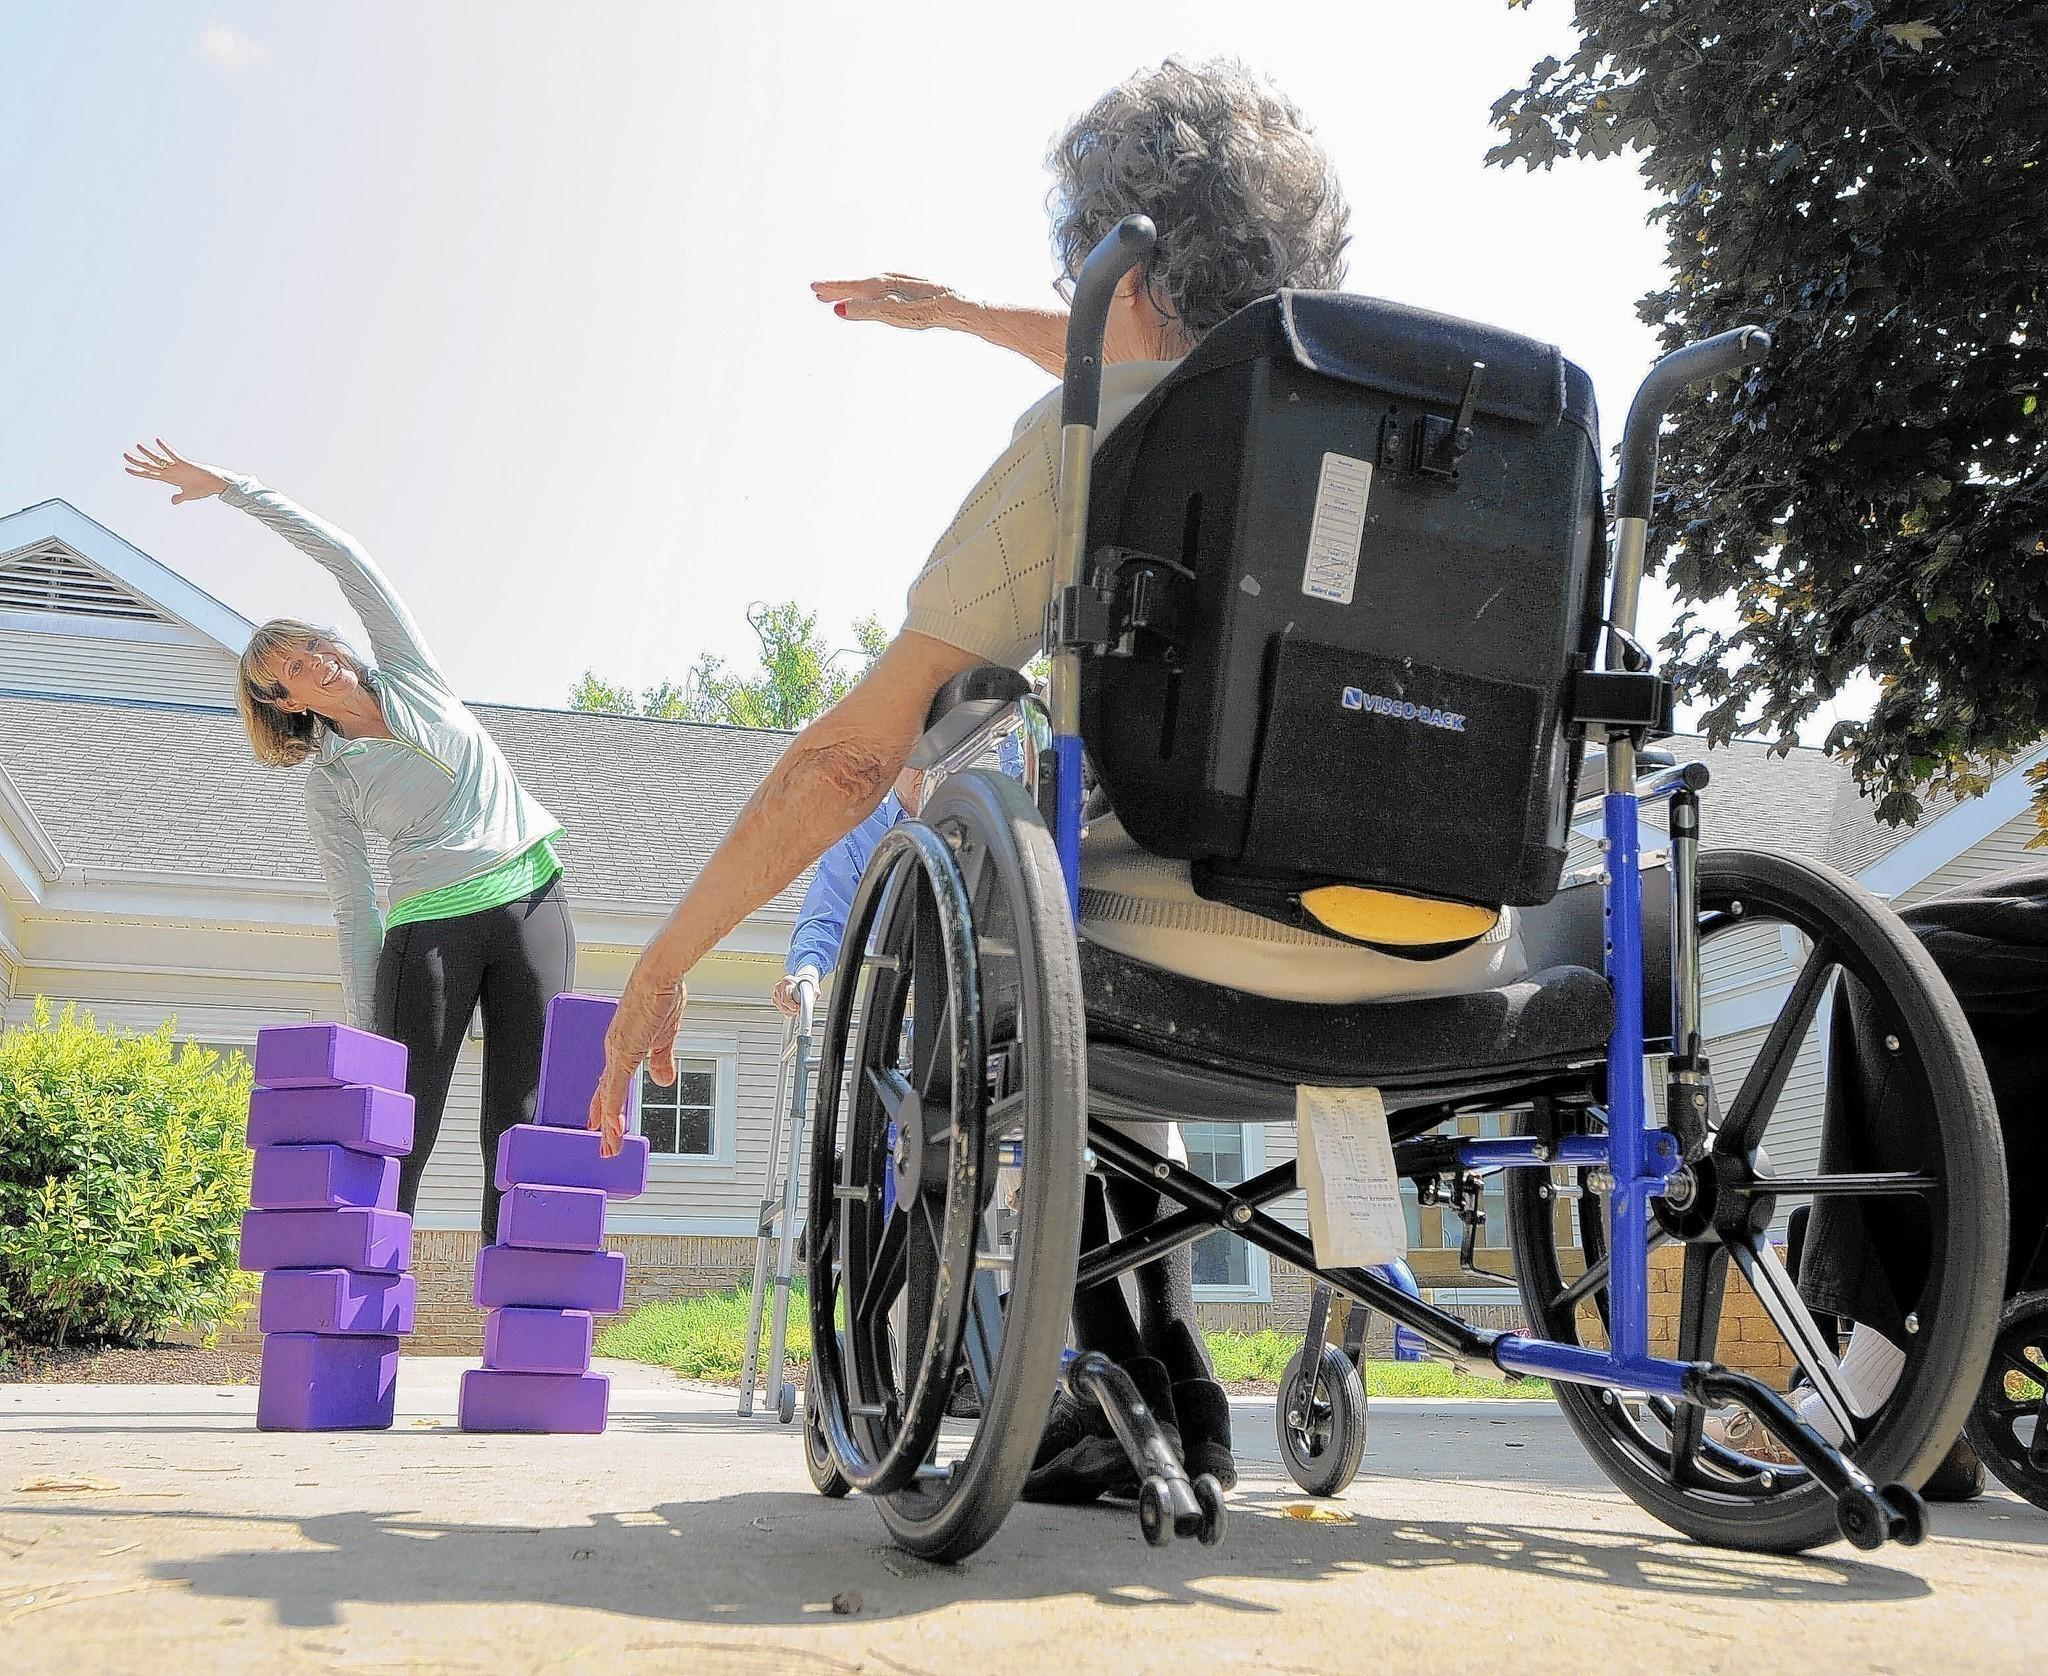 Cathy Rees teaches a yoga class for people with dementia at Copper Ridge, an assisted living center. Darlene King (right), a resident at the center, follows along.